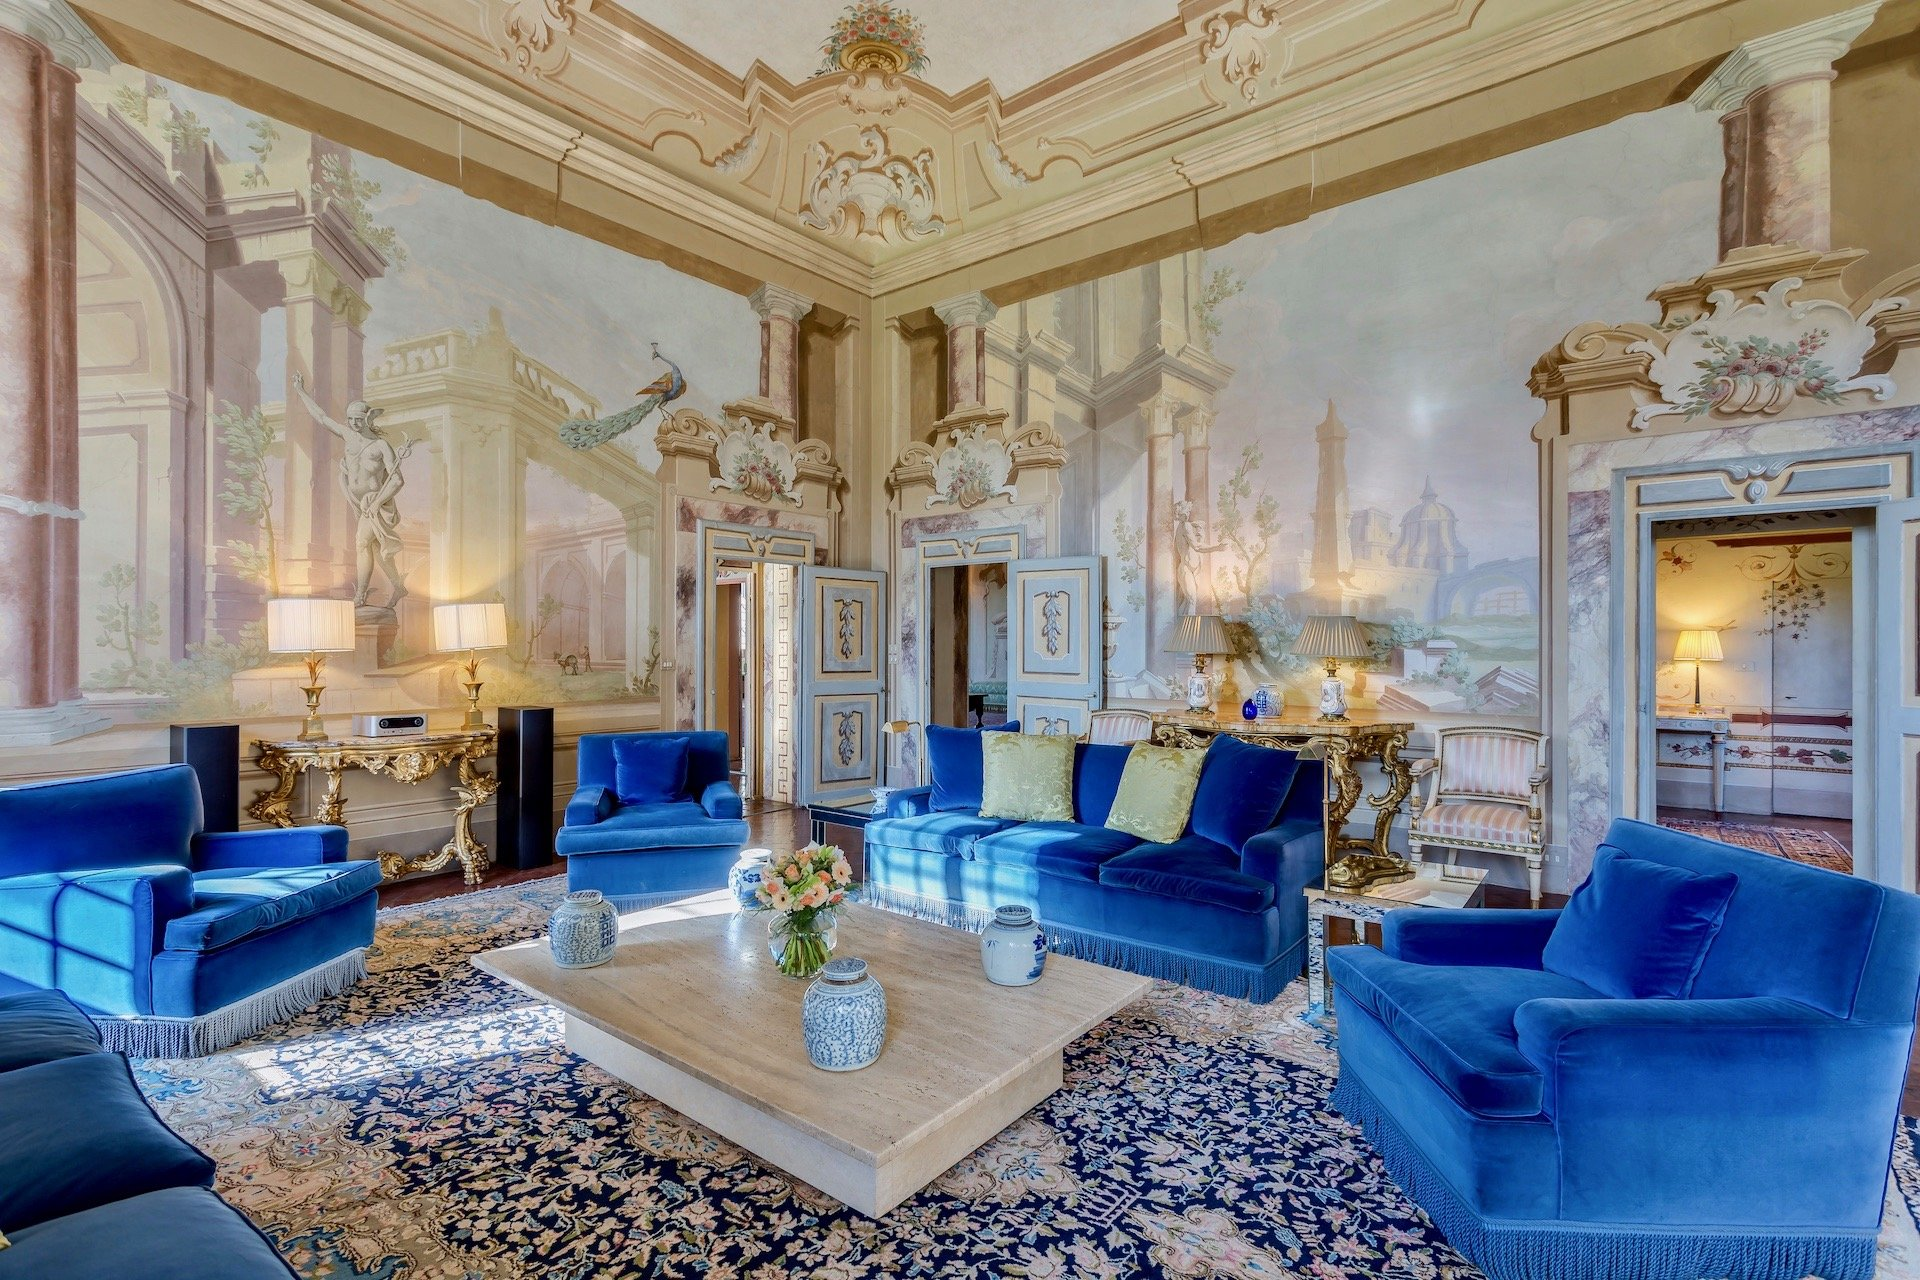 12. The Blue Living Room